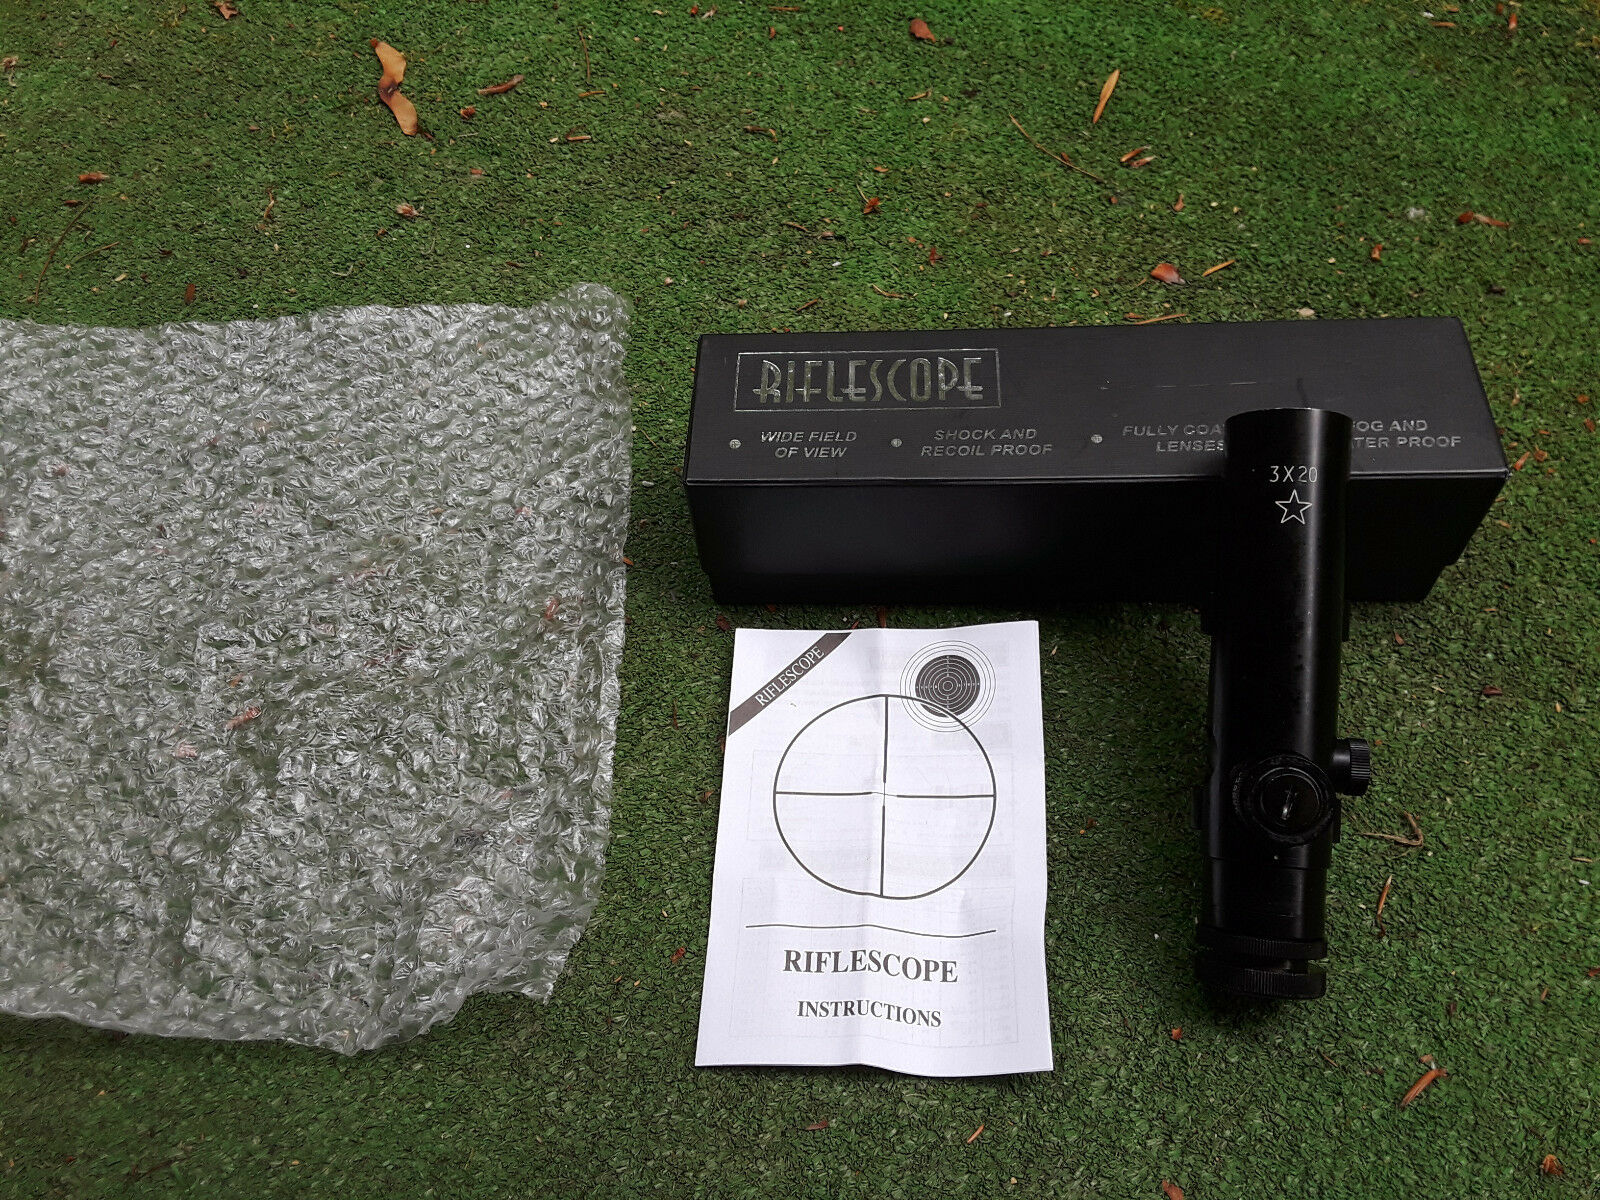 Colt Style Rifle Handle Scope 3x20 with Box & Manual